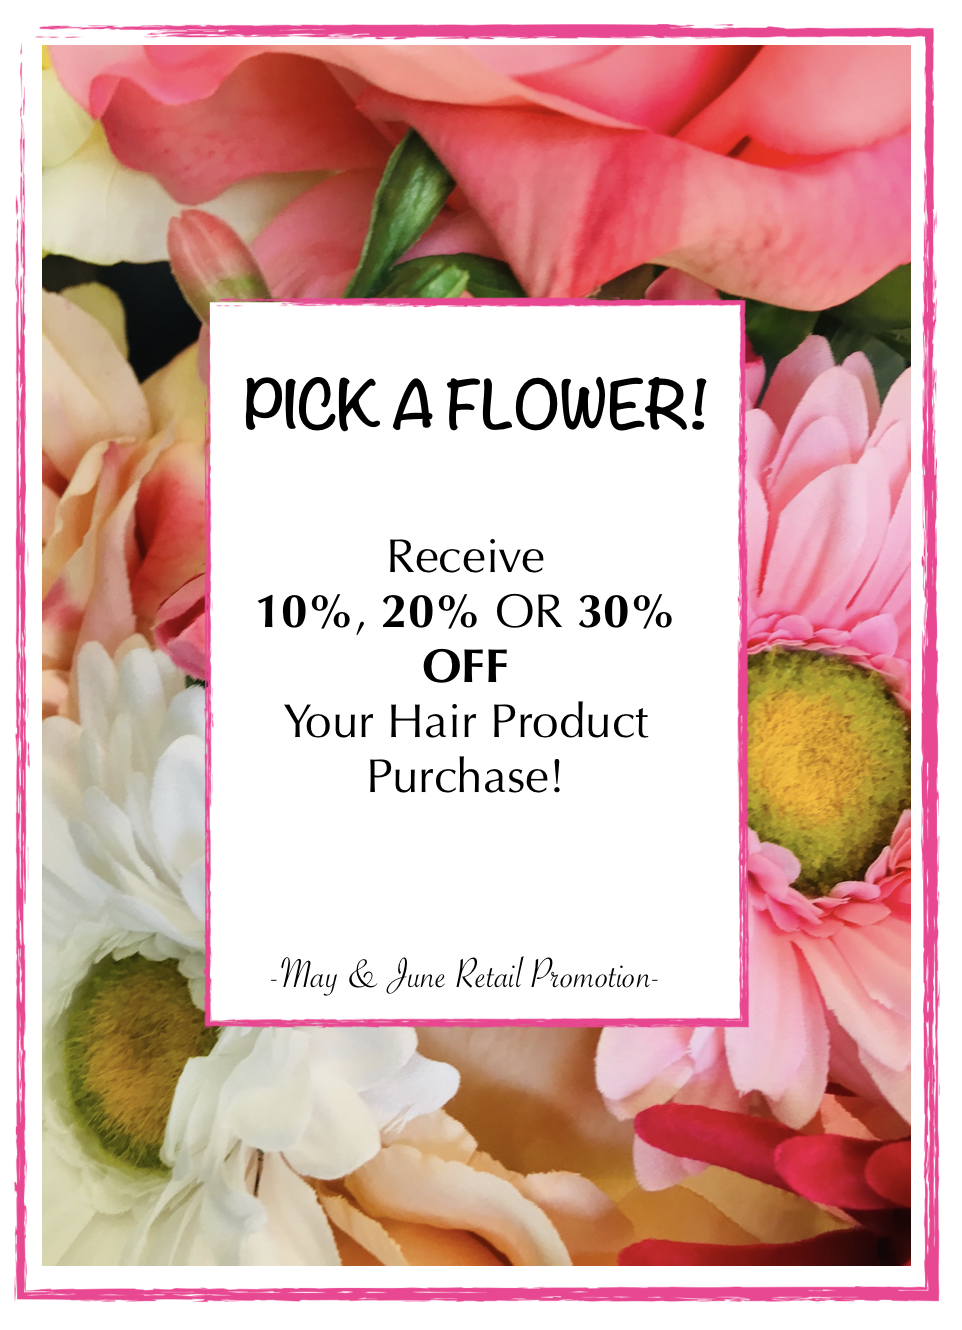 hair-product-promotion-pickaflower